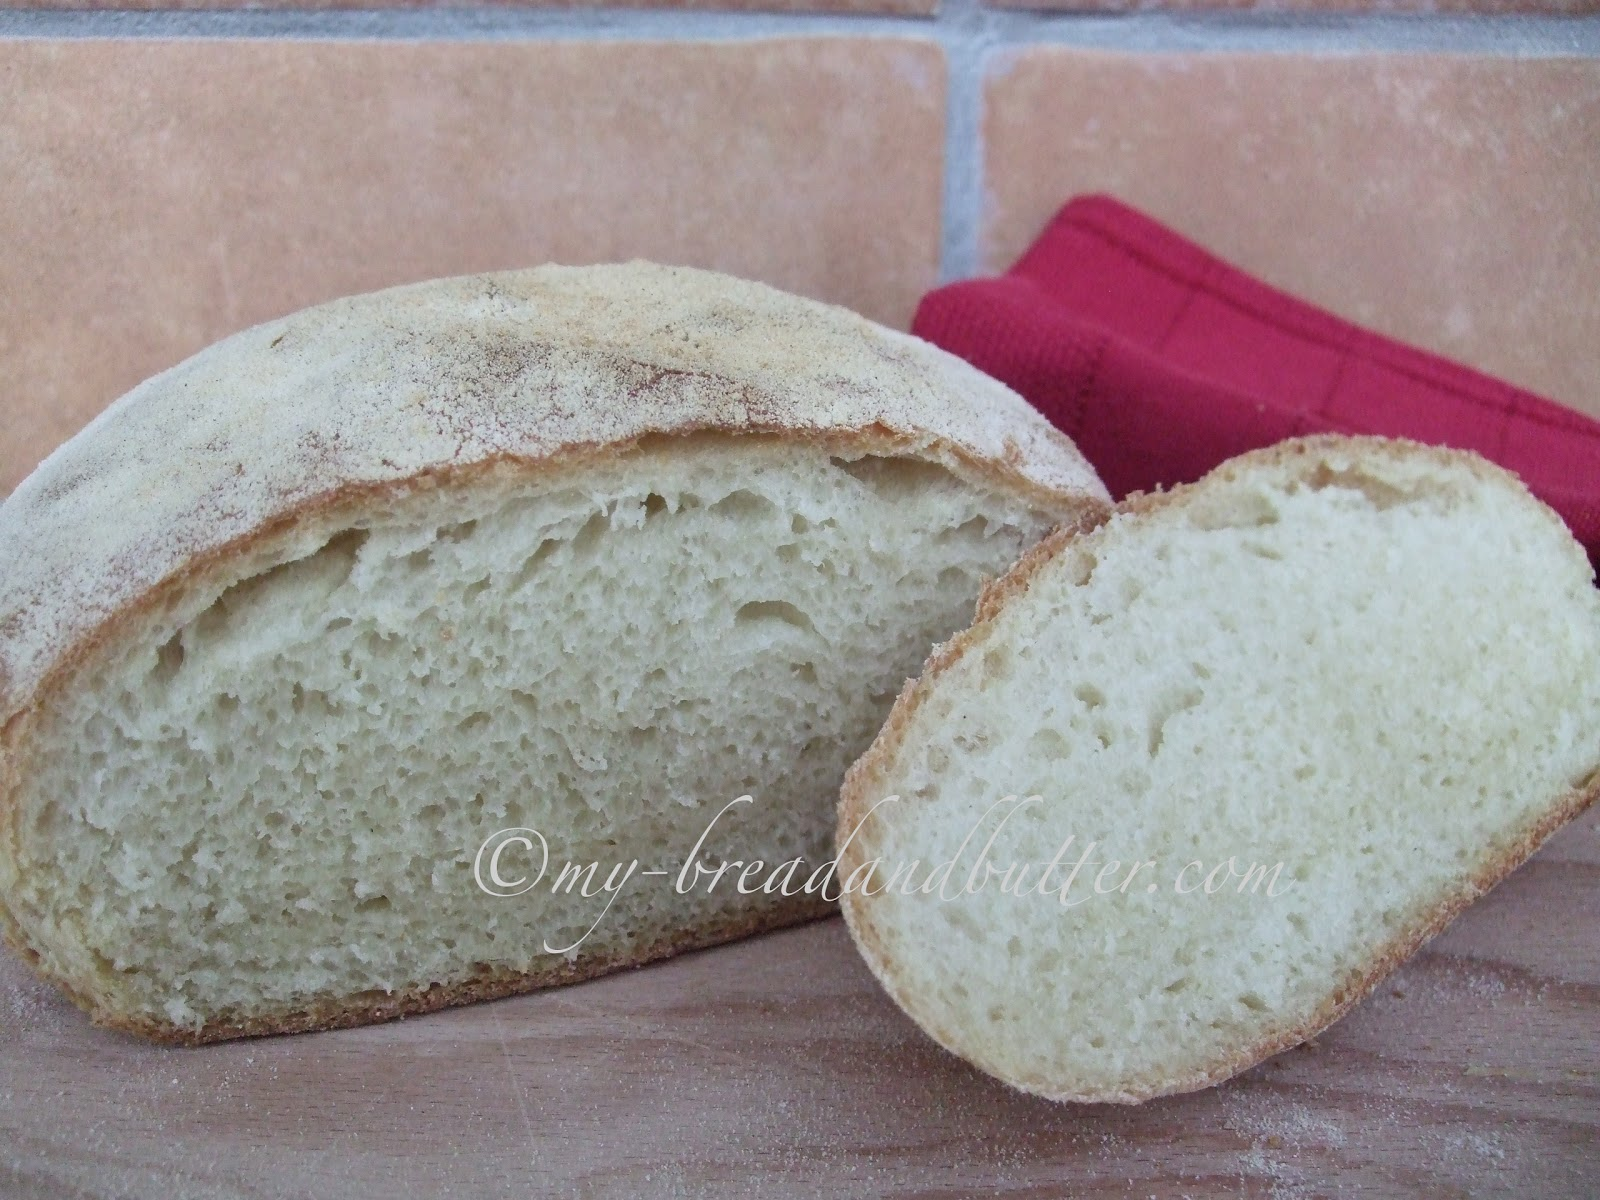 Bread and Butter....: Semolina flour bread with a dried